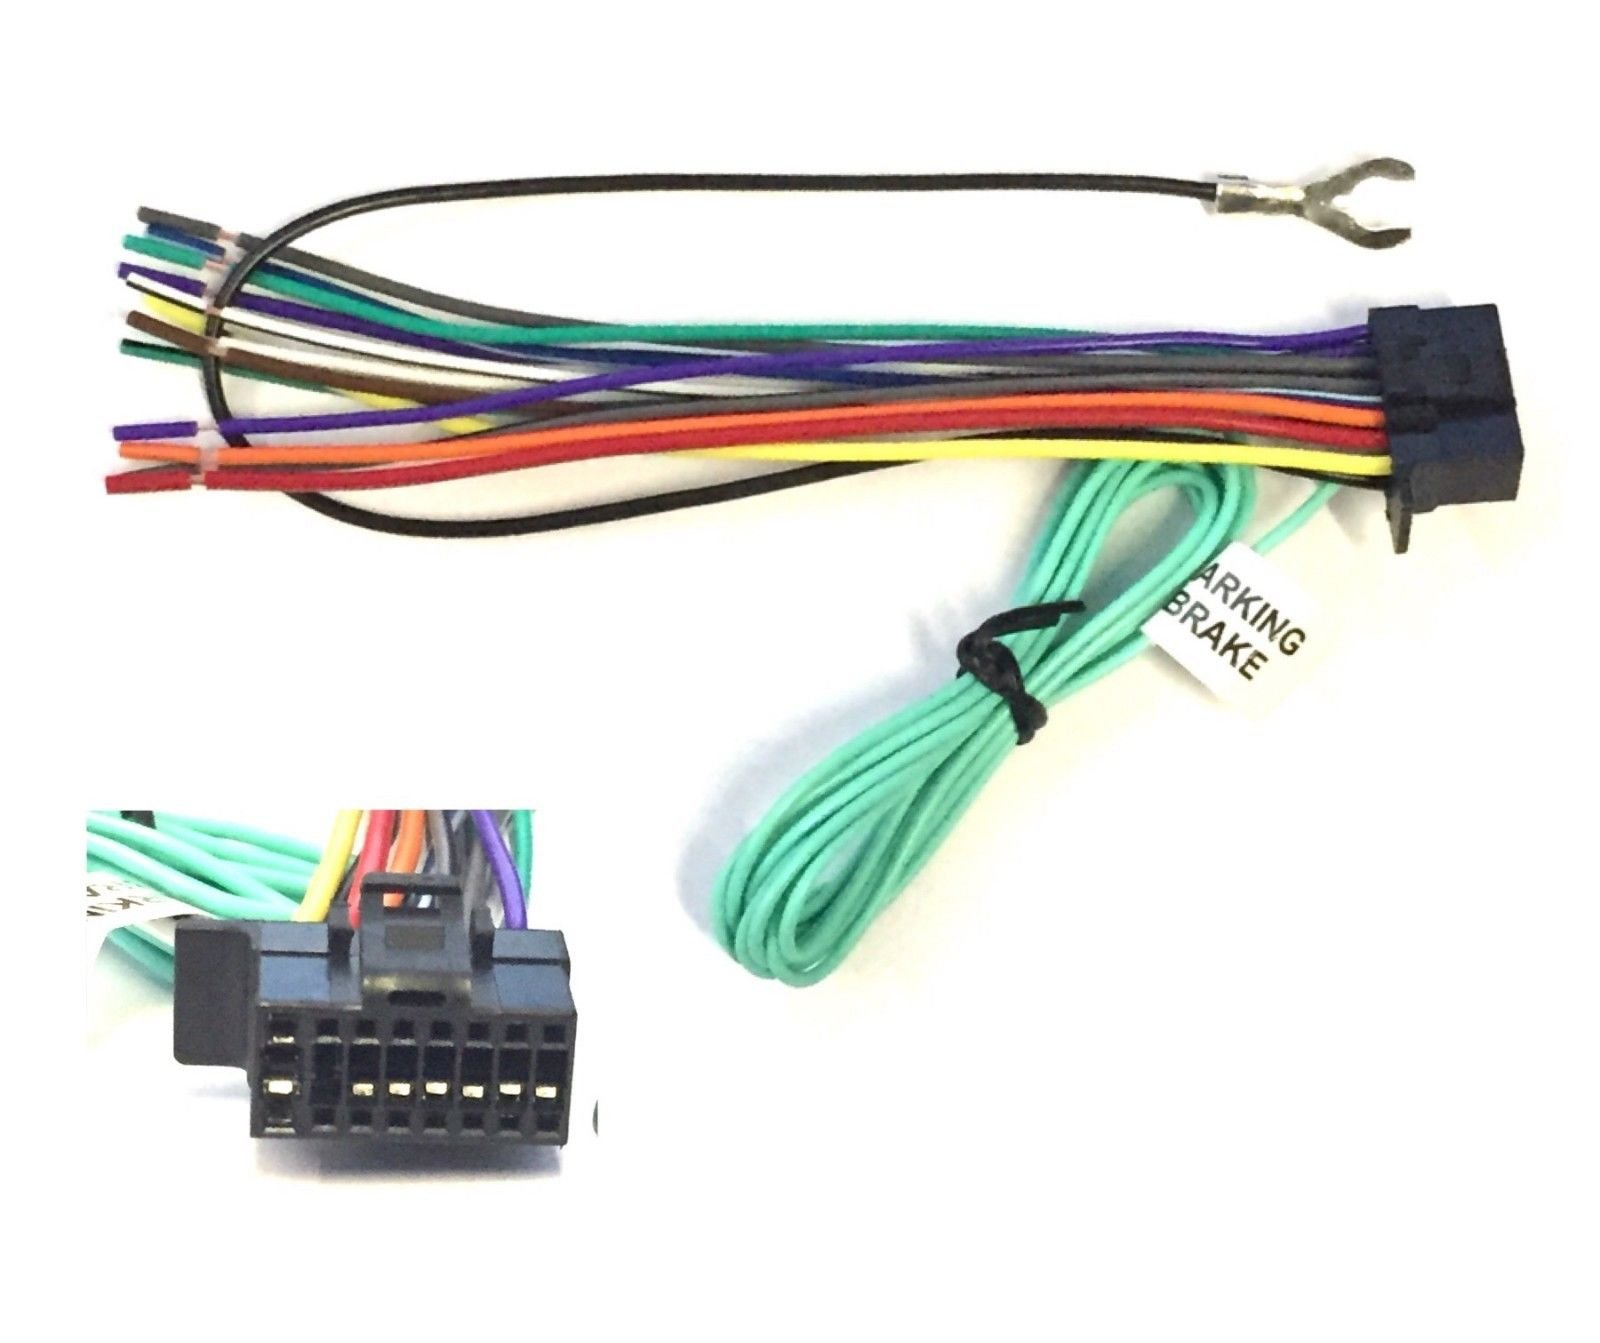 hight resolution of get quotations asc car stereo power speaker wire harness plug for sony xplod es 16 pin